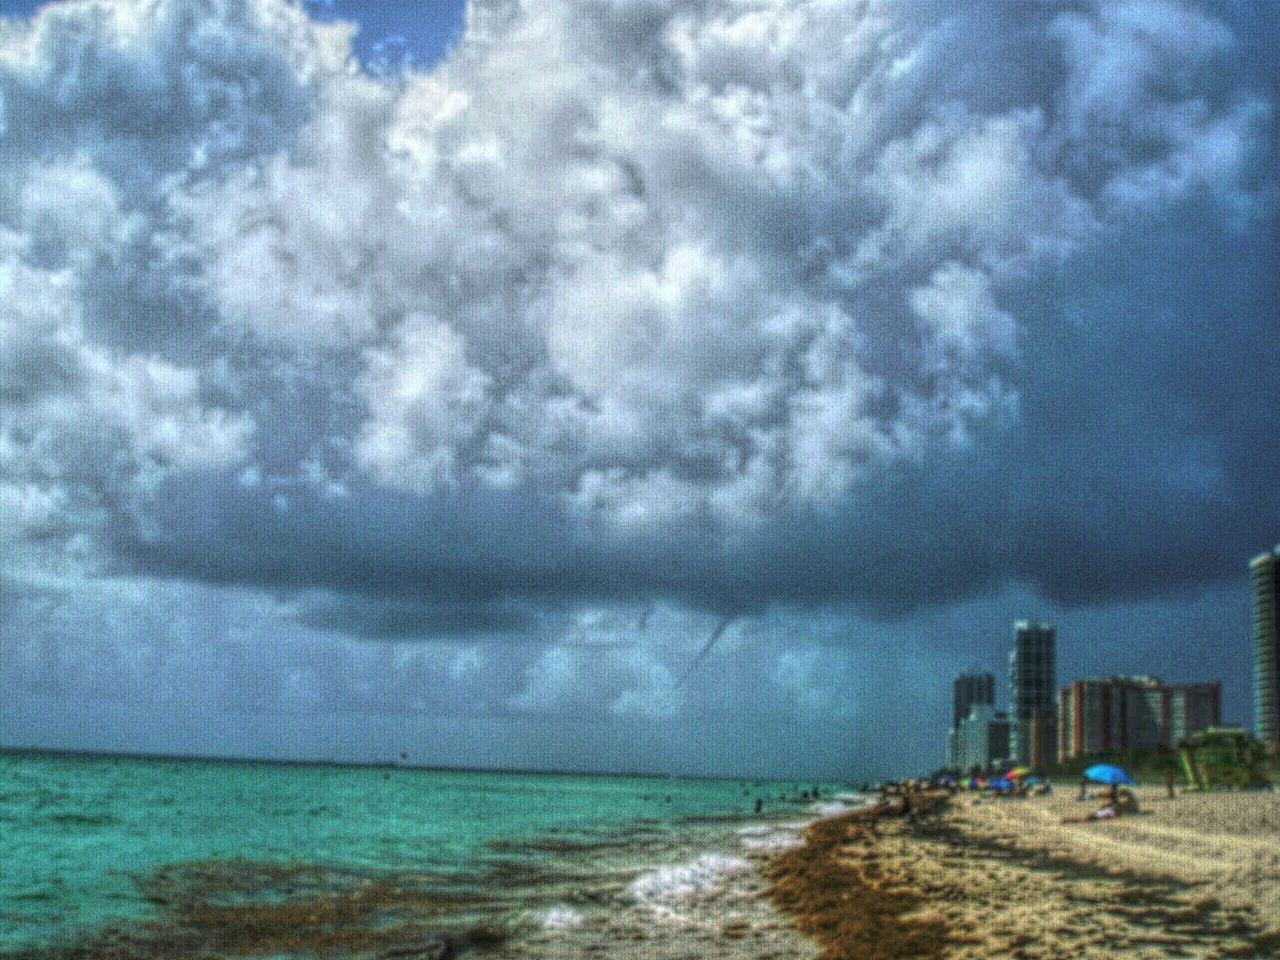 sea, sky, beach, horizon over water, cloud - sky, water, nature, outdoors, sand, day, scenics, tranquility, architecture, no people, beauty in nature, storm cloud, building exterior, city